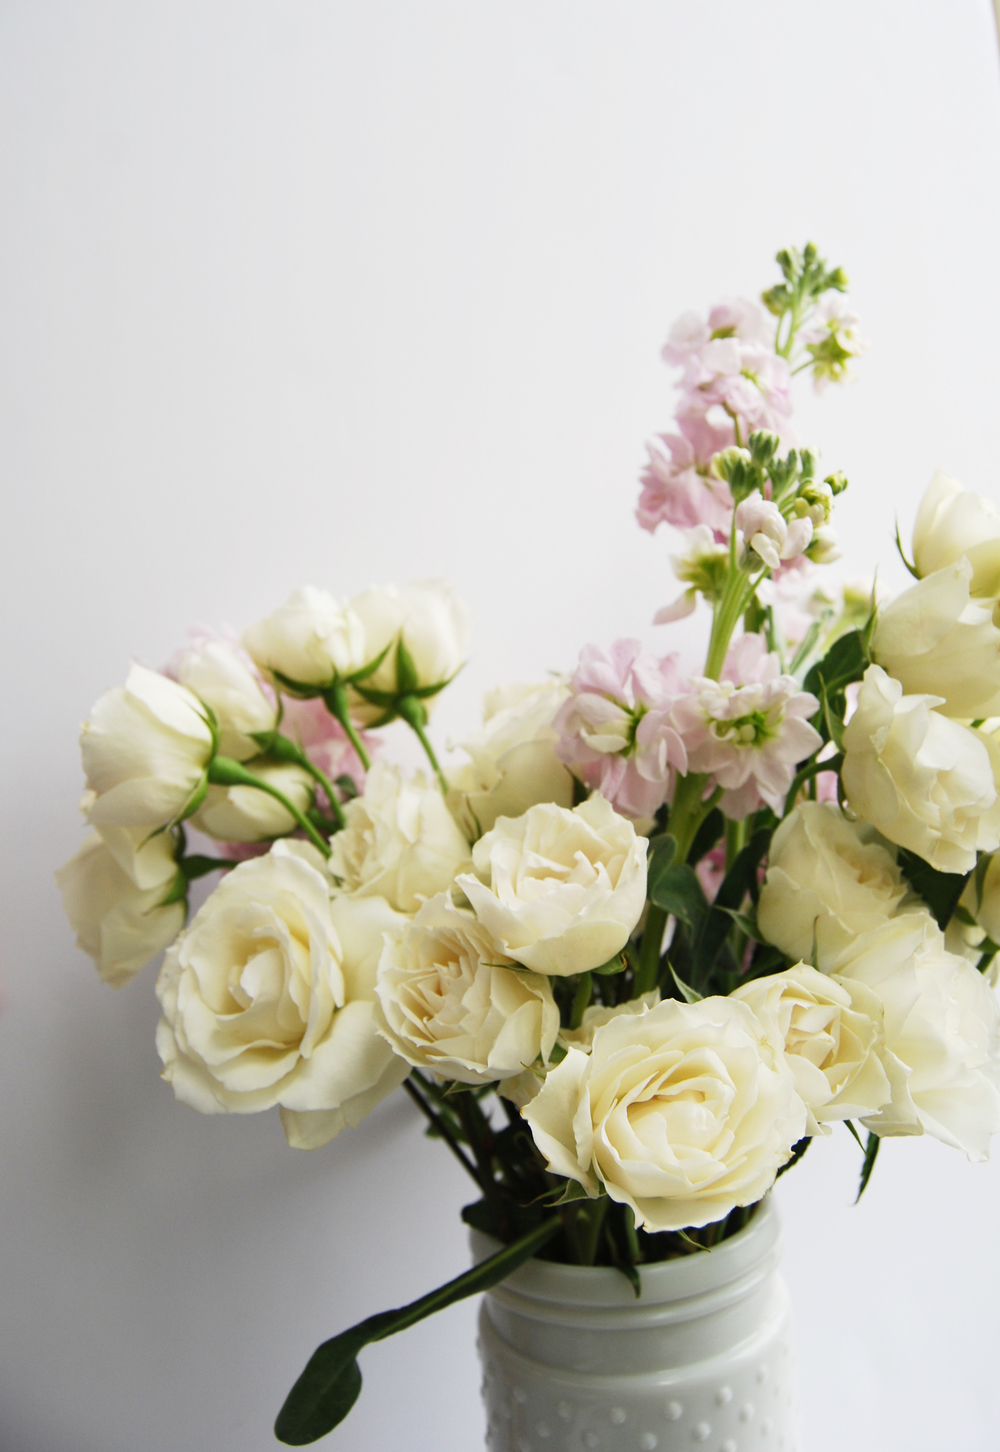 flower_arrangement_12.jpg